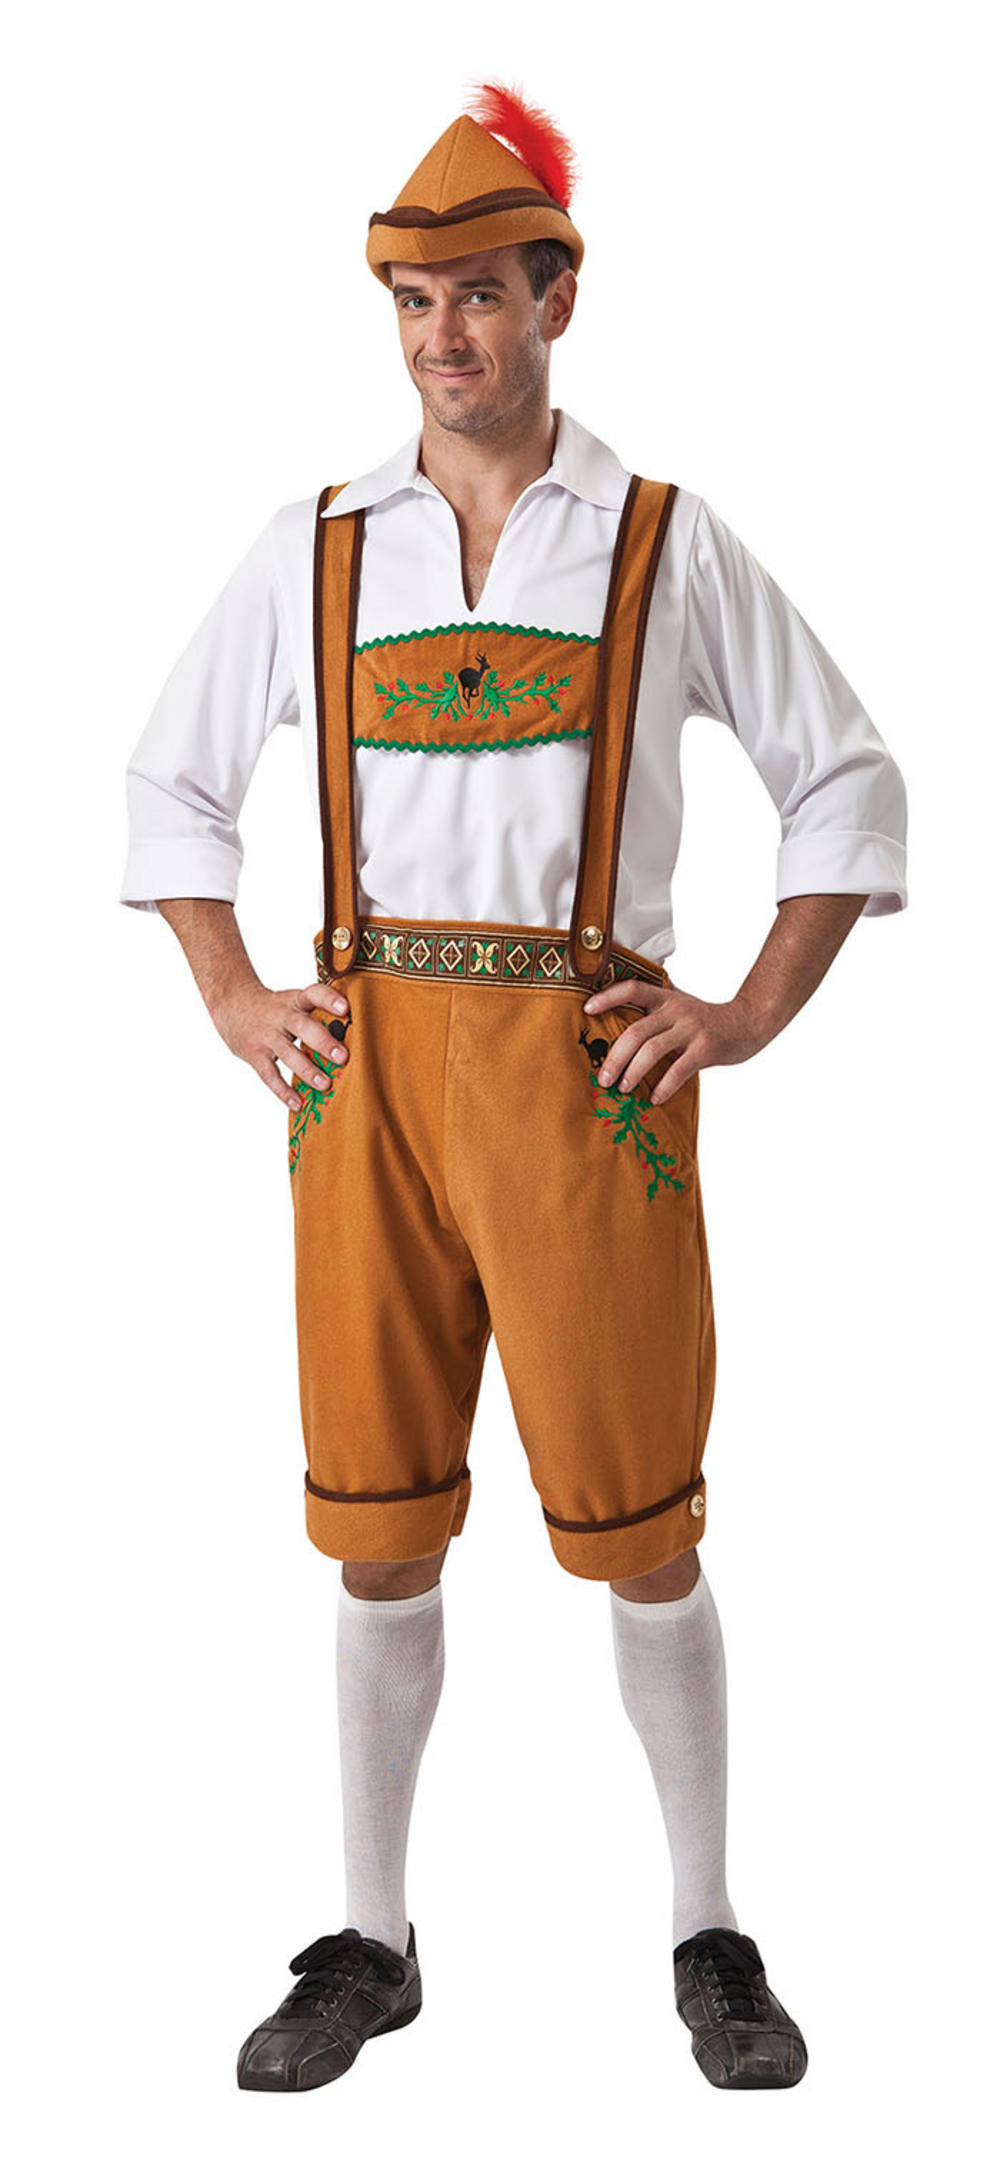 Oktoberfest Country Man Costume  sc 1 st  Mega Fancy Dress & Oktoberfest Country Man Costume | Letter